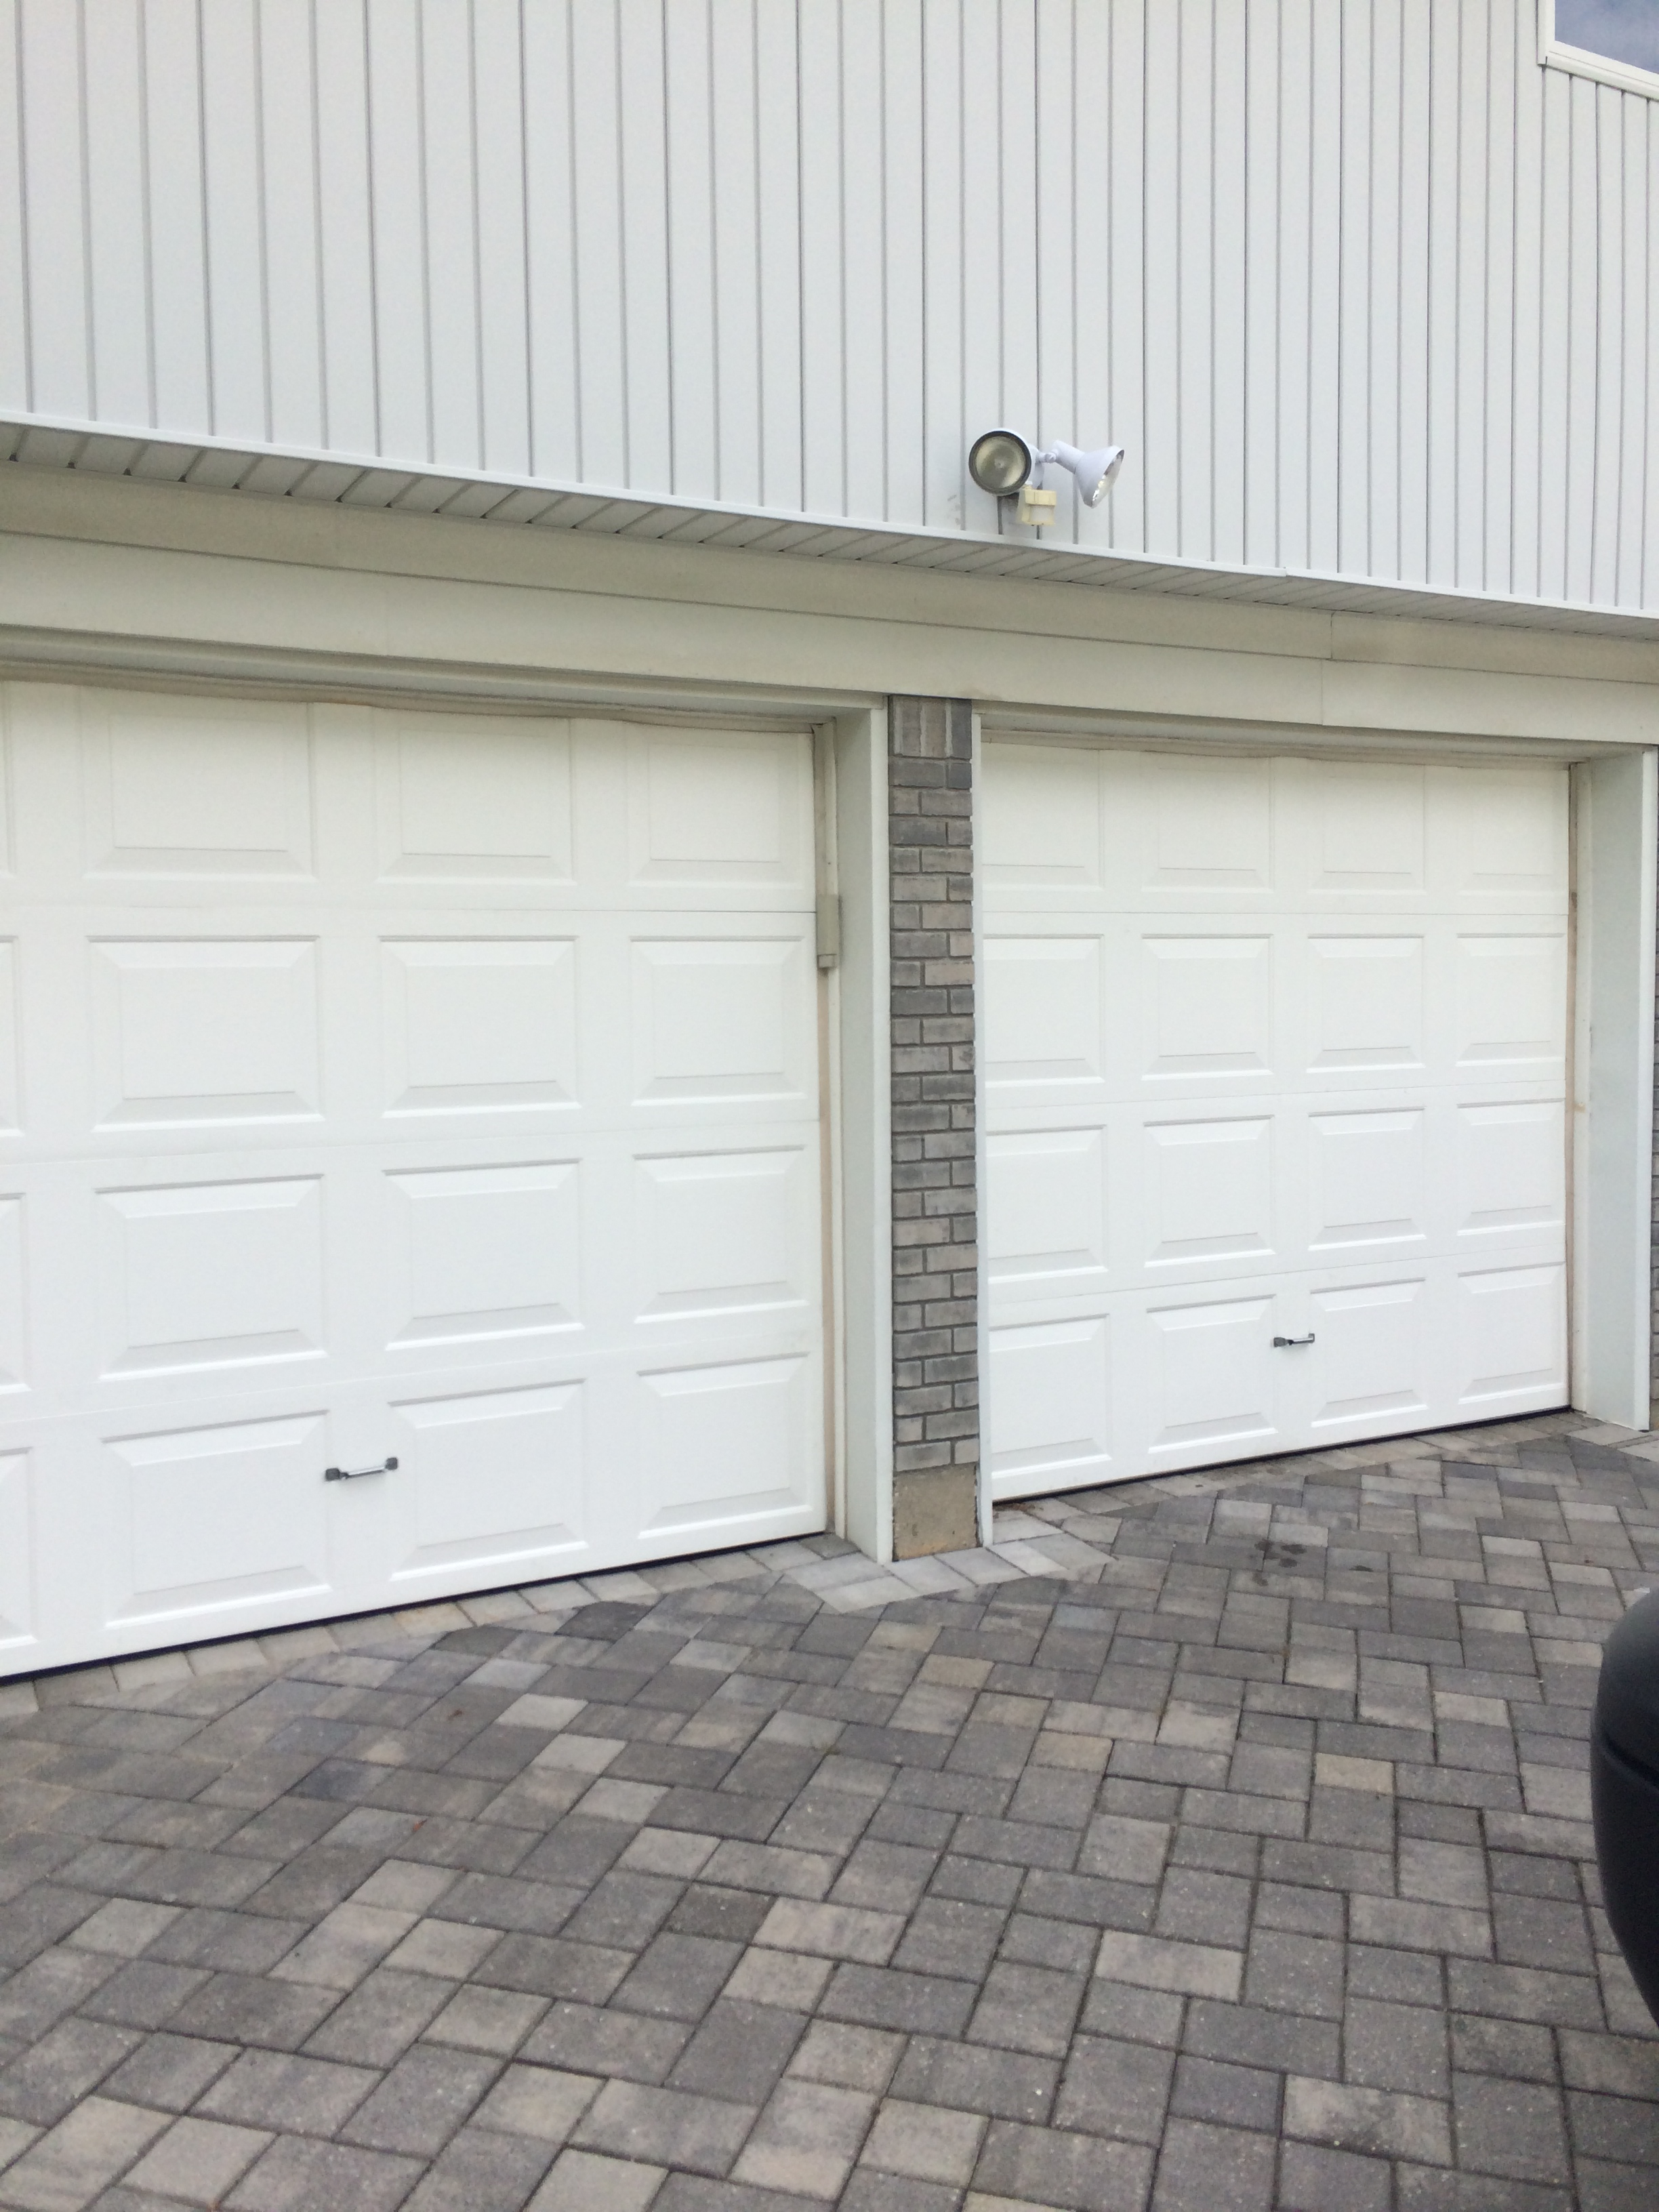 Allfamily factory trained and dedicated to perfect installations and repairs of garage doors rubansaba